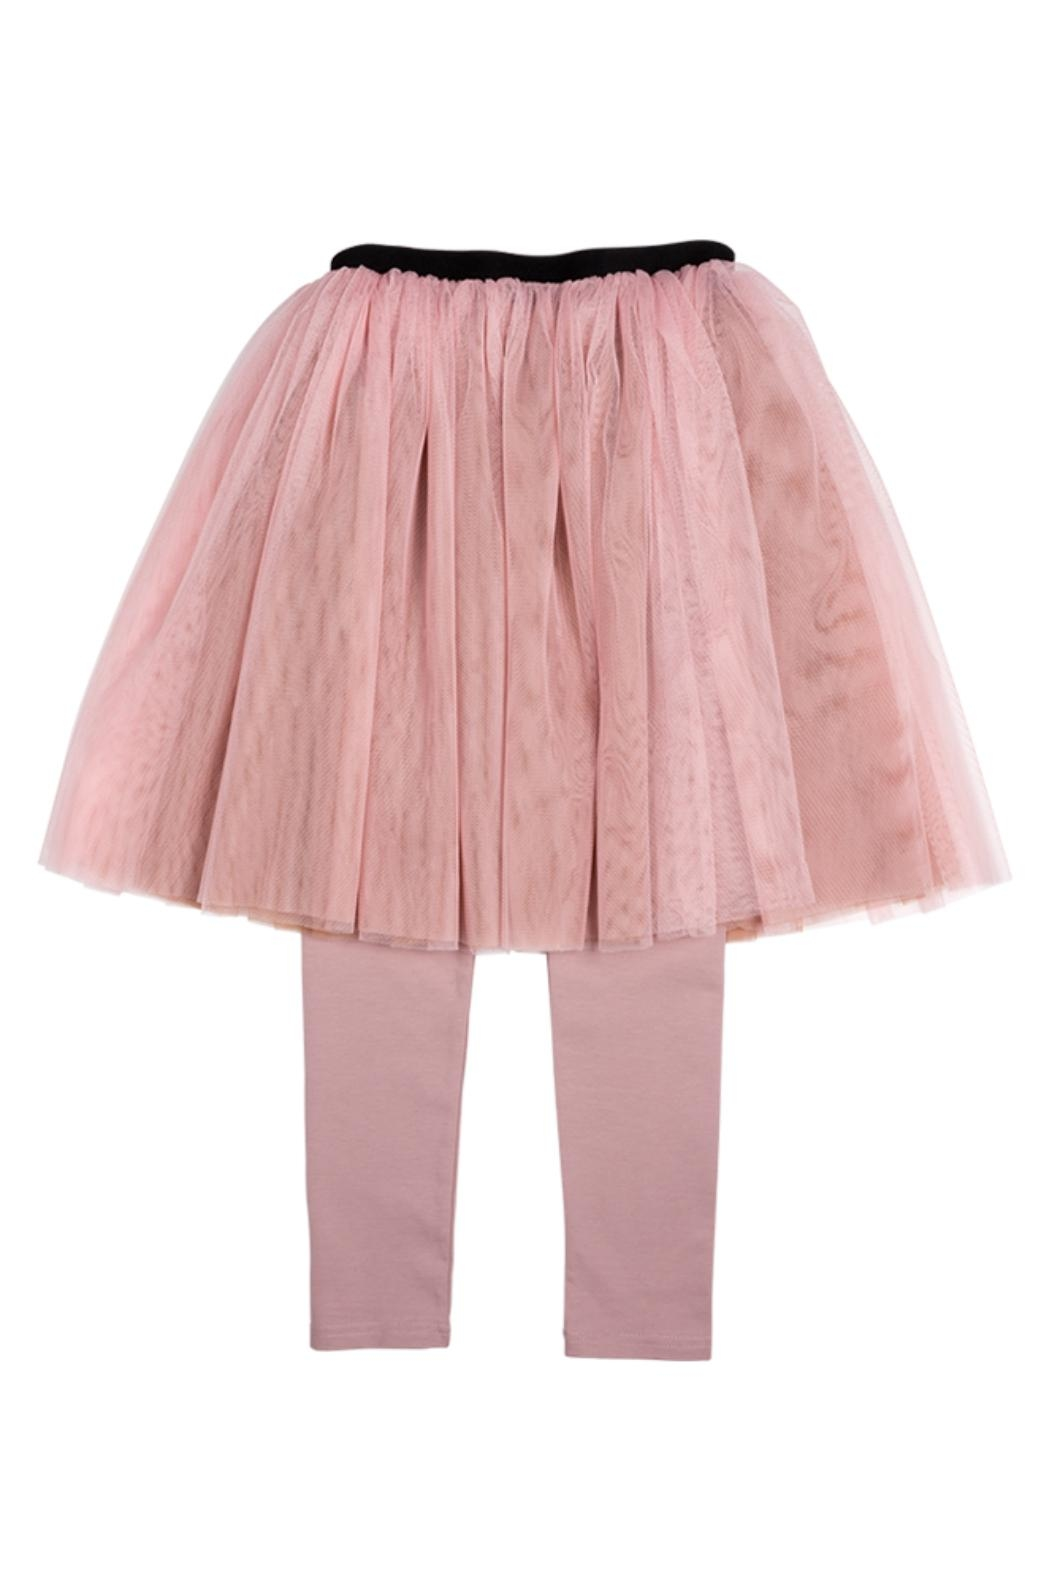 Rock Your Baby Tulle Skirted Leggings - Main Image